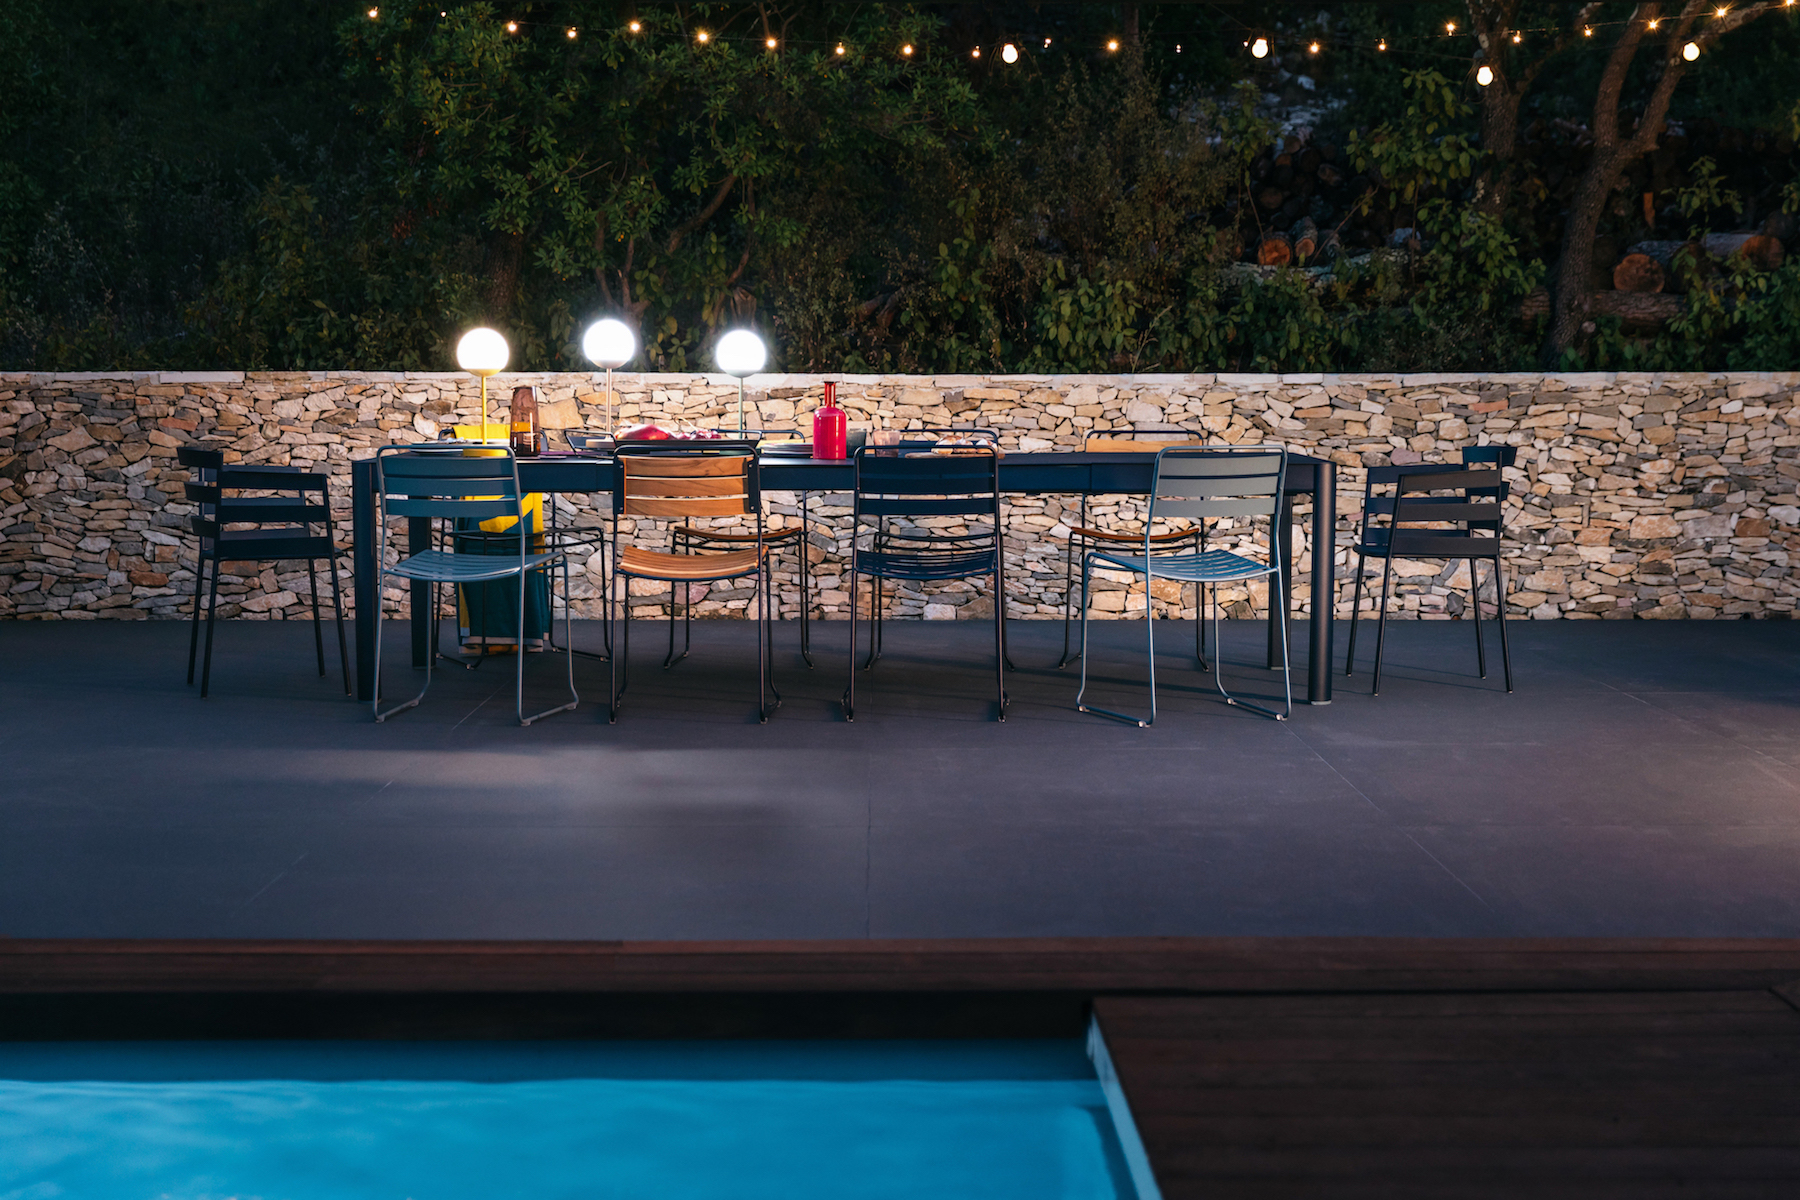 Fermob Features New Outdoor Furniture And Lighting At The ICFF From May 20  U2013 23, 2018 In New York, NY